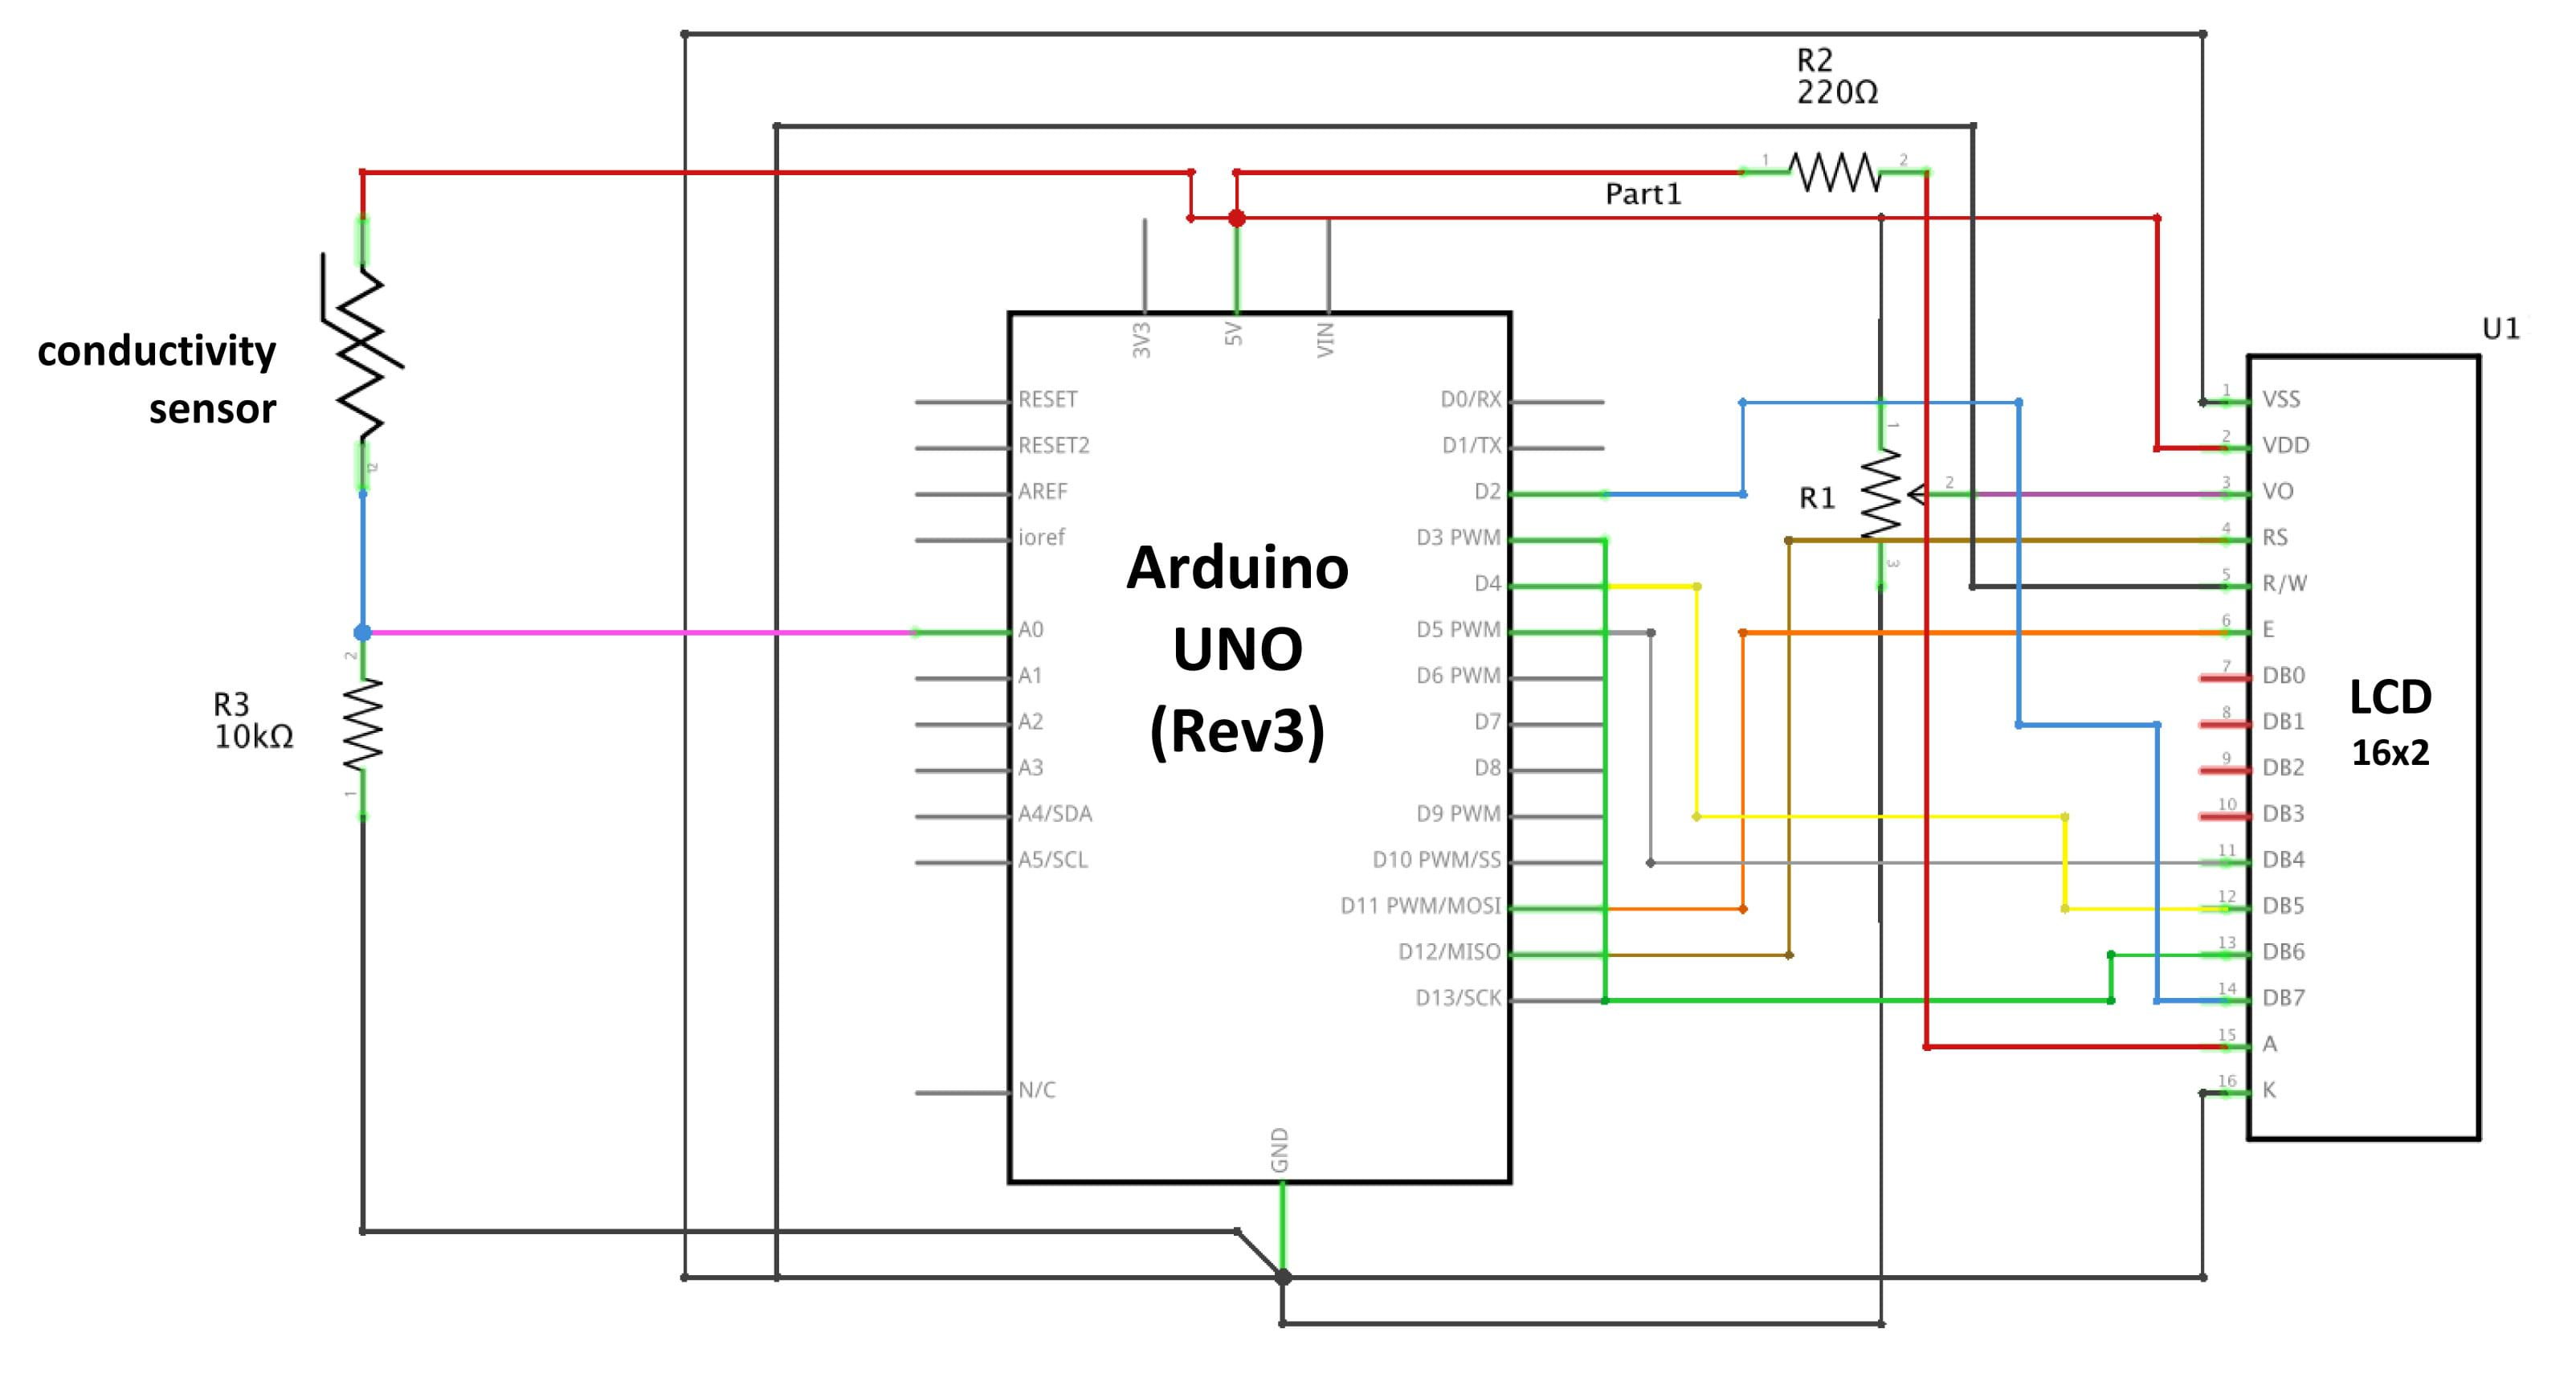 Build And Test A Conductivity Probe With Arduino Activity Using An Electrical Meter To Troubleshoot Wiring Problems Youtube Diagram Shows The Circuitry Needed Connect Uno Breadboard That Has